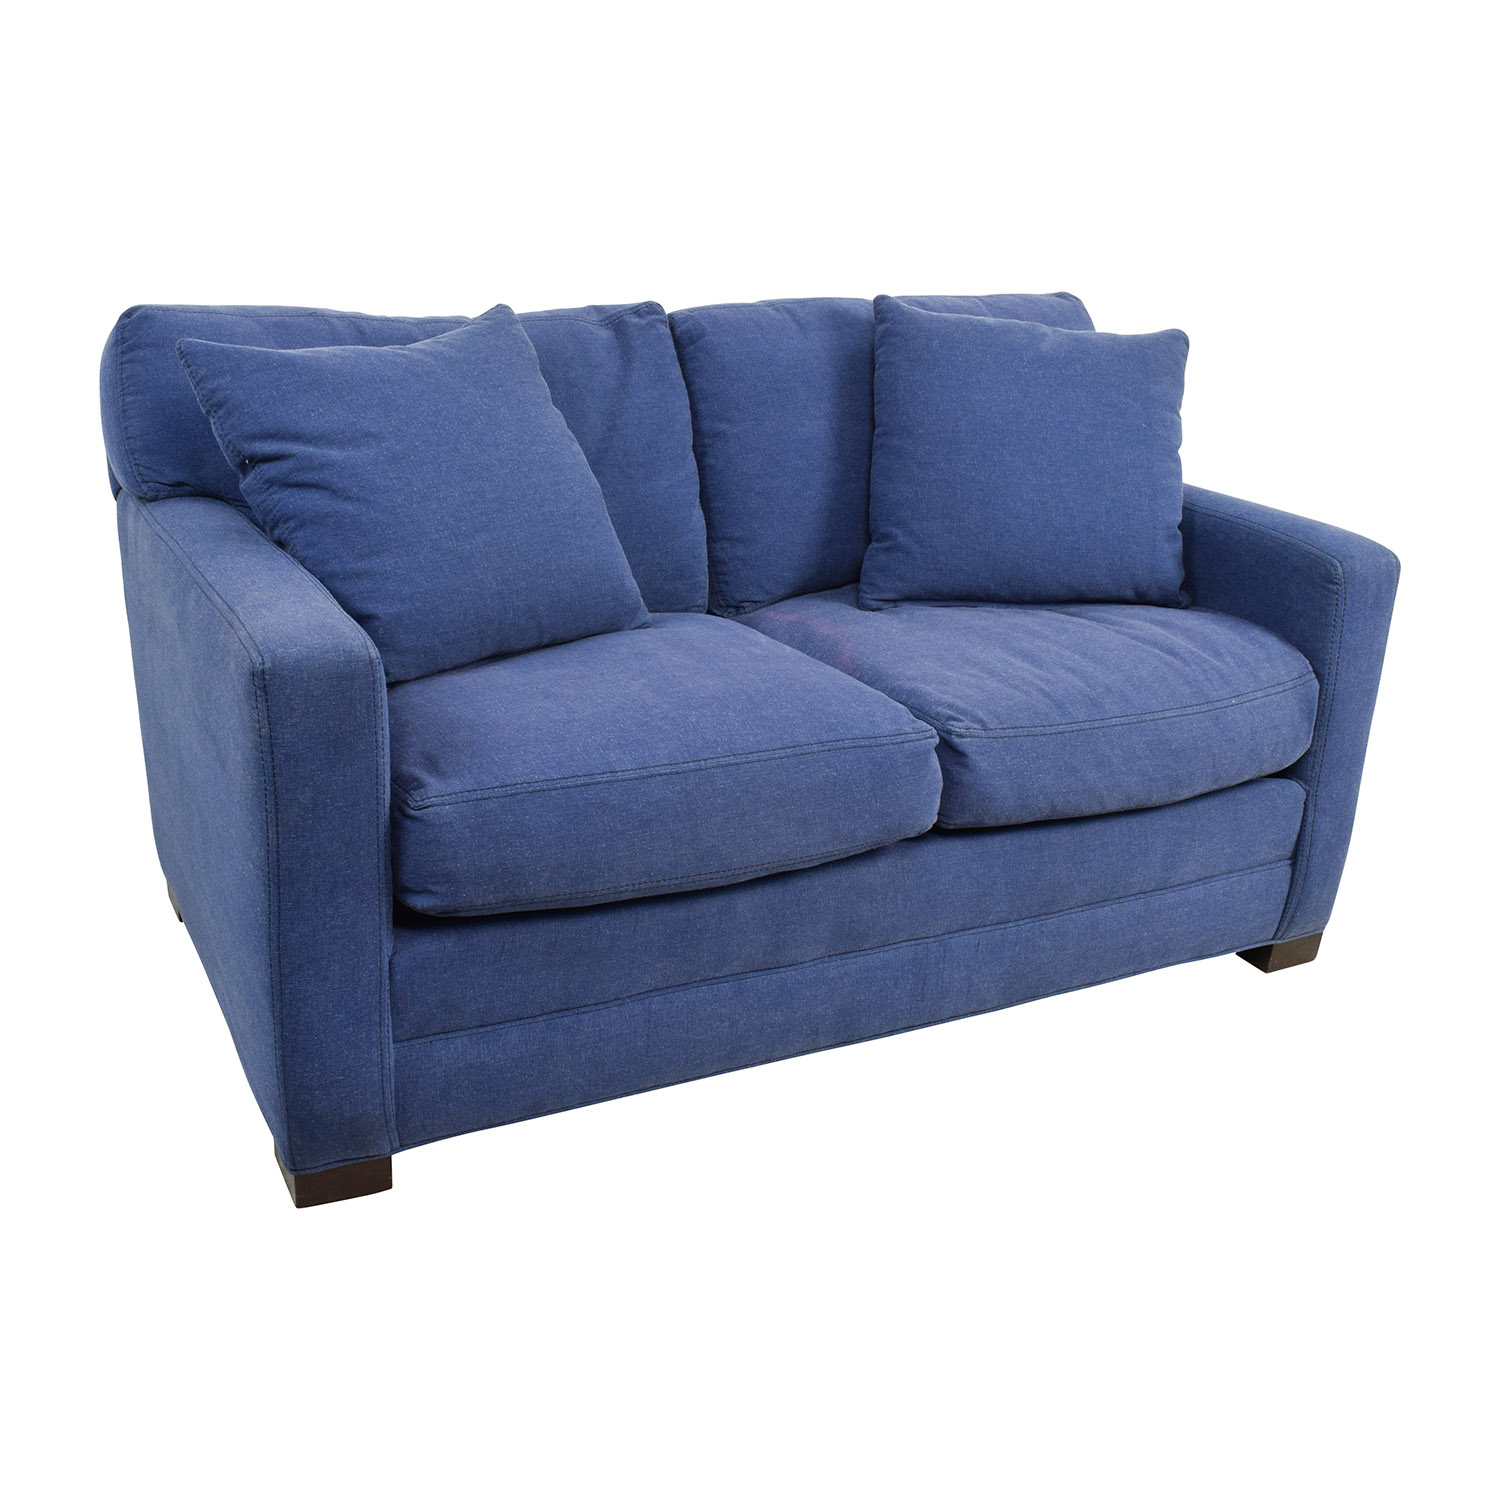 Lee Industries Sofas Lee Industries Sofa Prices With Es And A